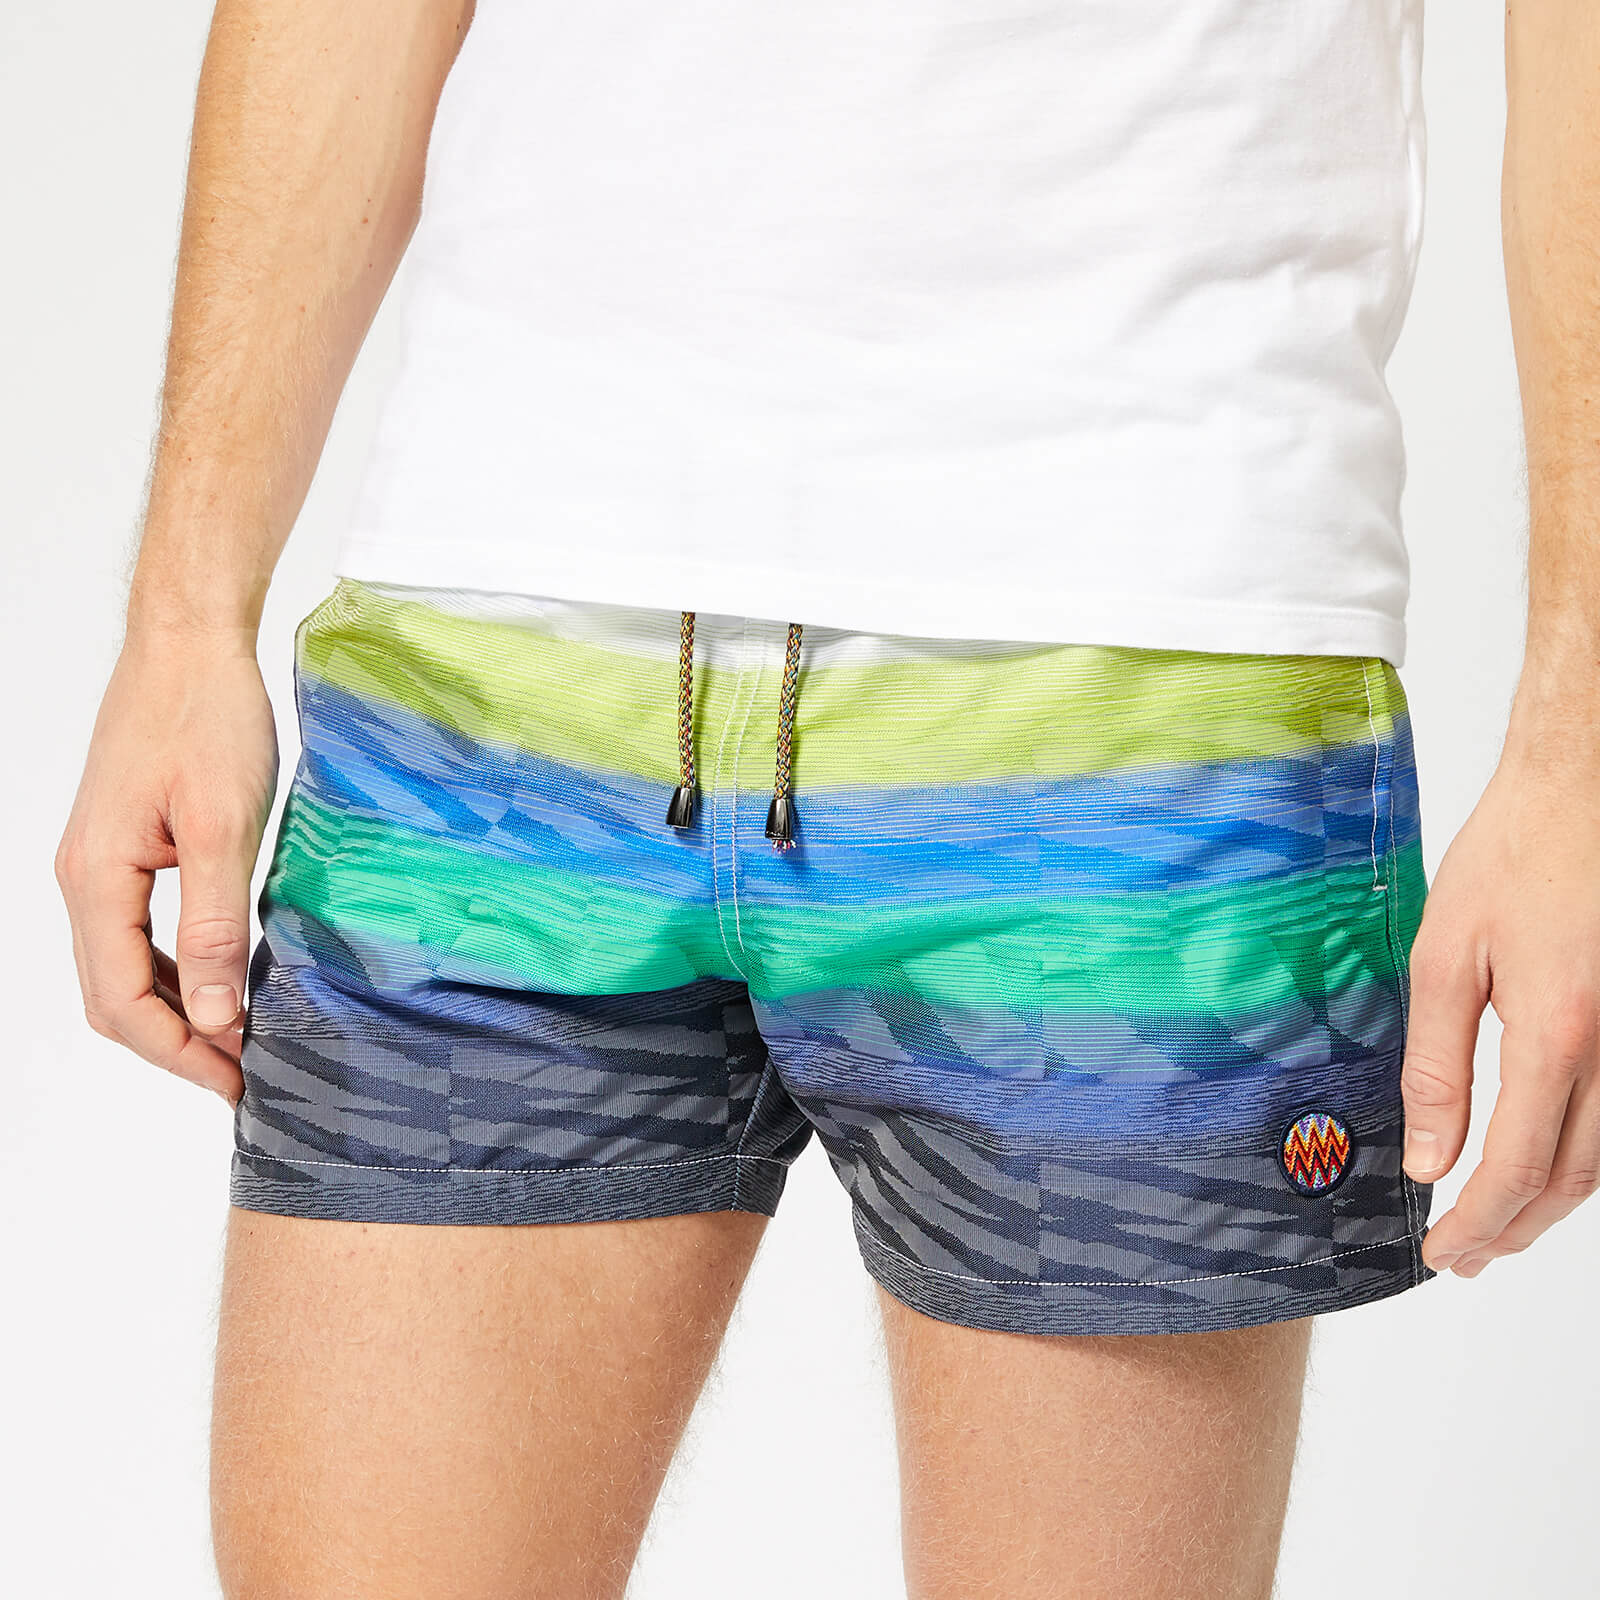 e61b9843d2 Missoni Men's Multi-Stripe Swim Shorts - White/Green - Free UK Delivery  over £50